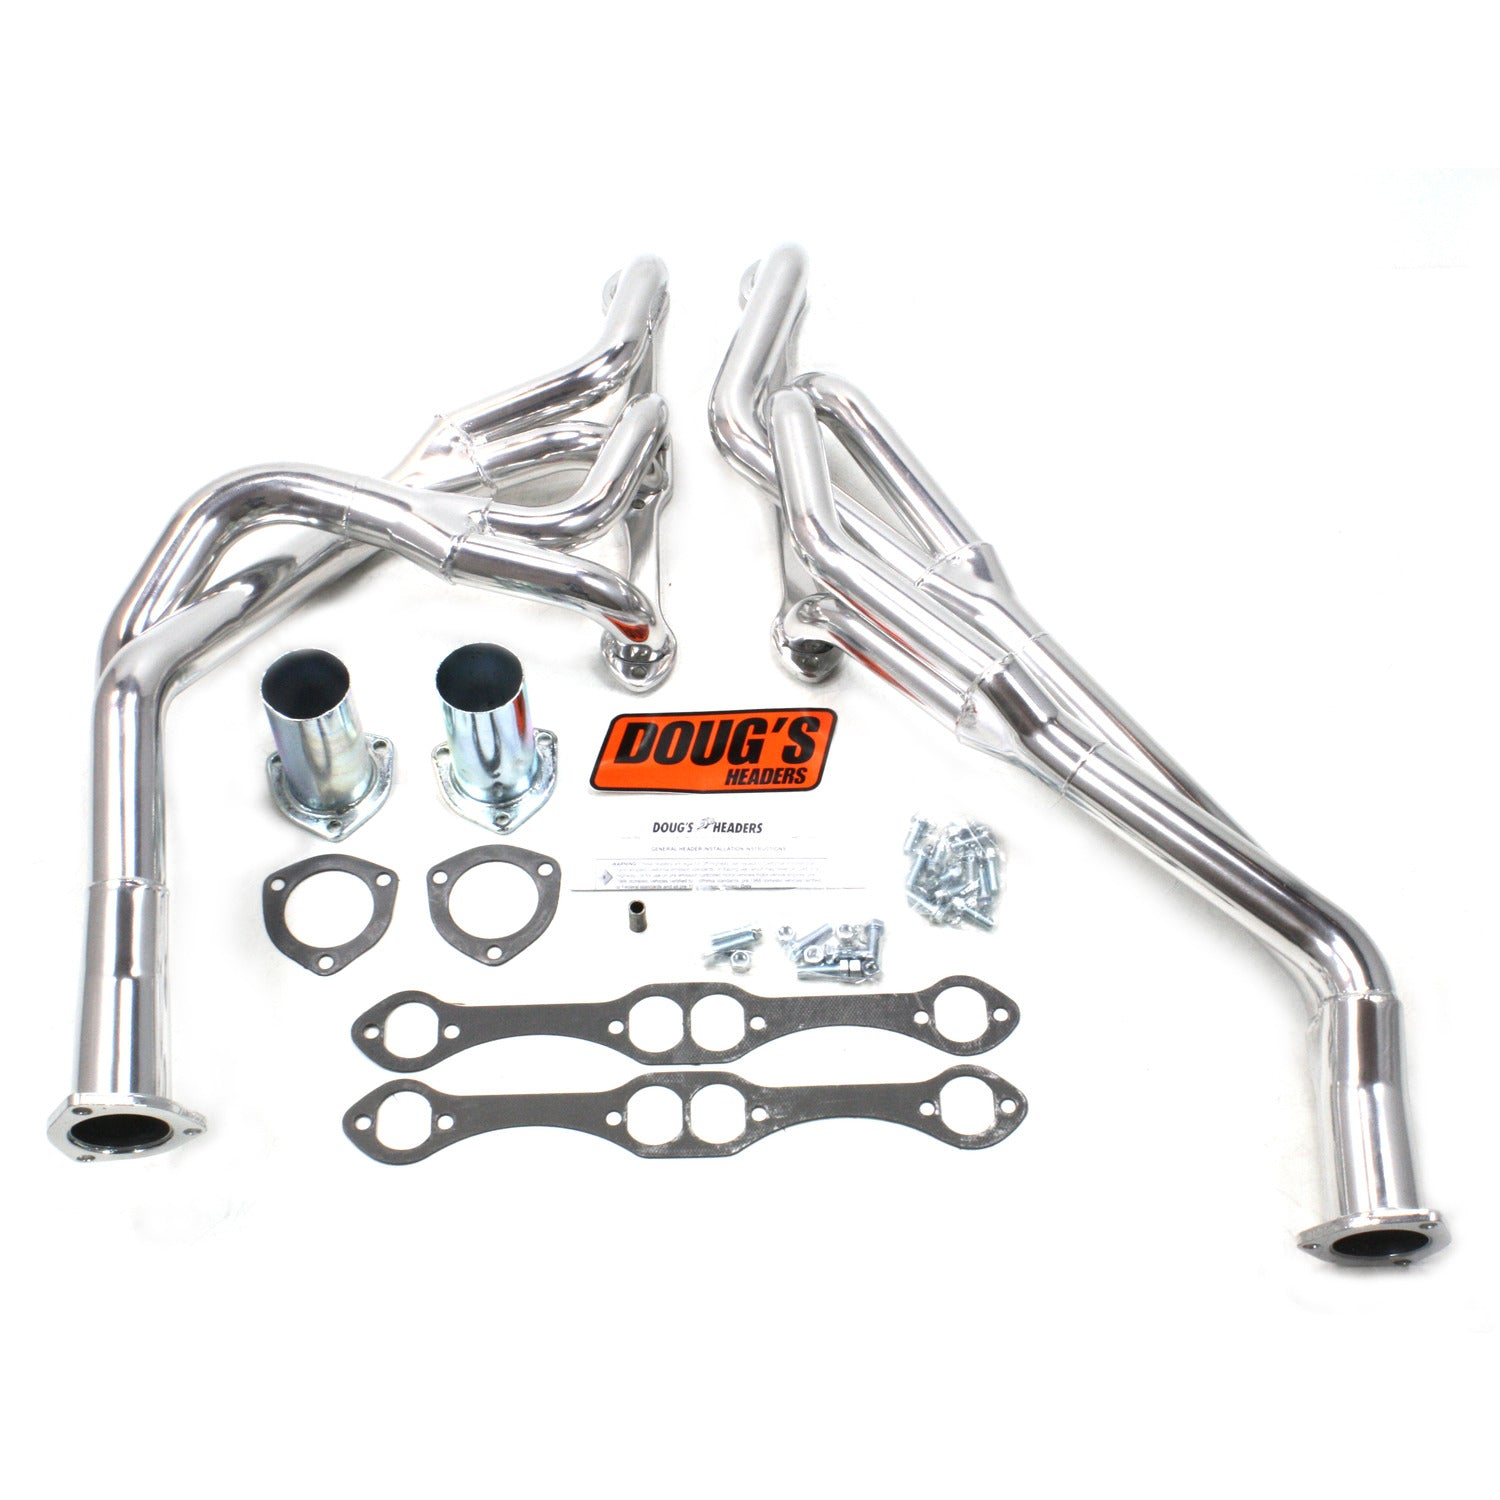 "Doug's Headers D376Y 1 5/8"" Tri-Y Header Chevrolet Chevelle Small Block Chevrolet 64-67 Metallic Ceramic Coating"